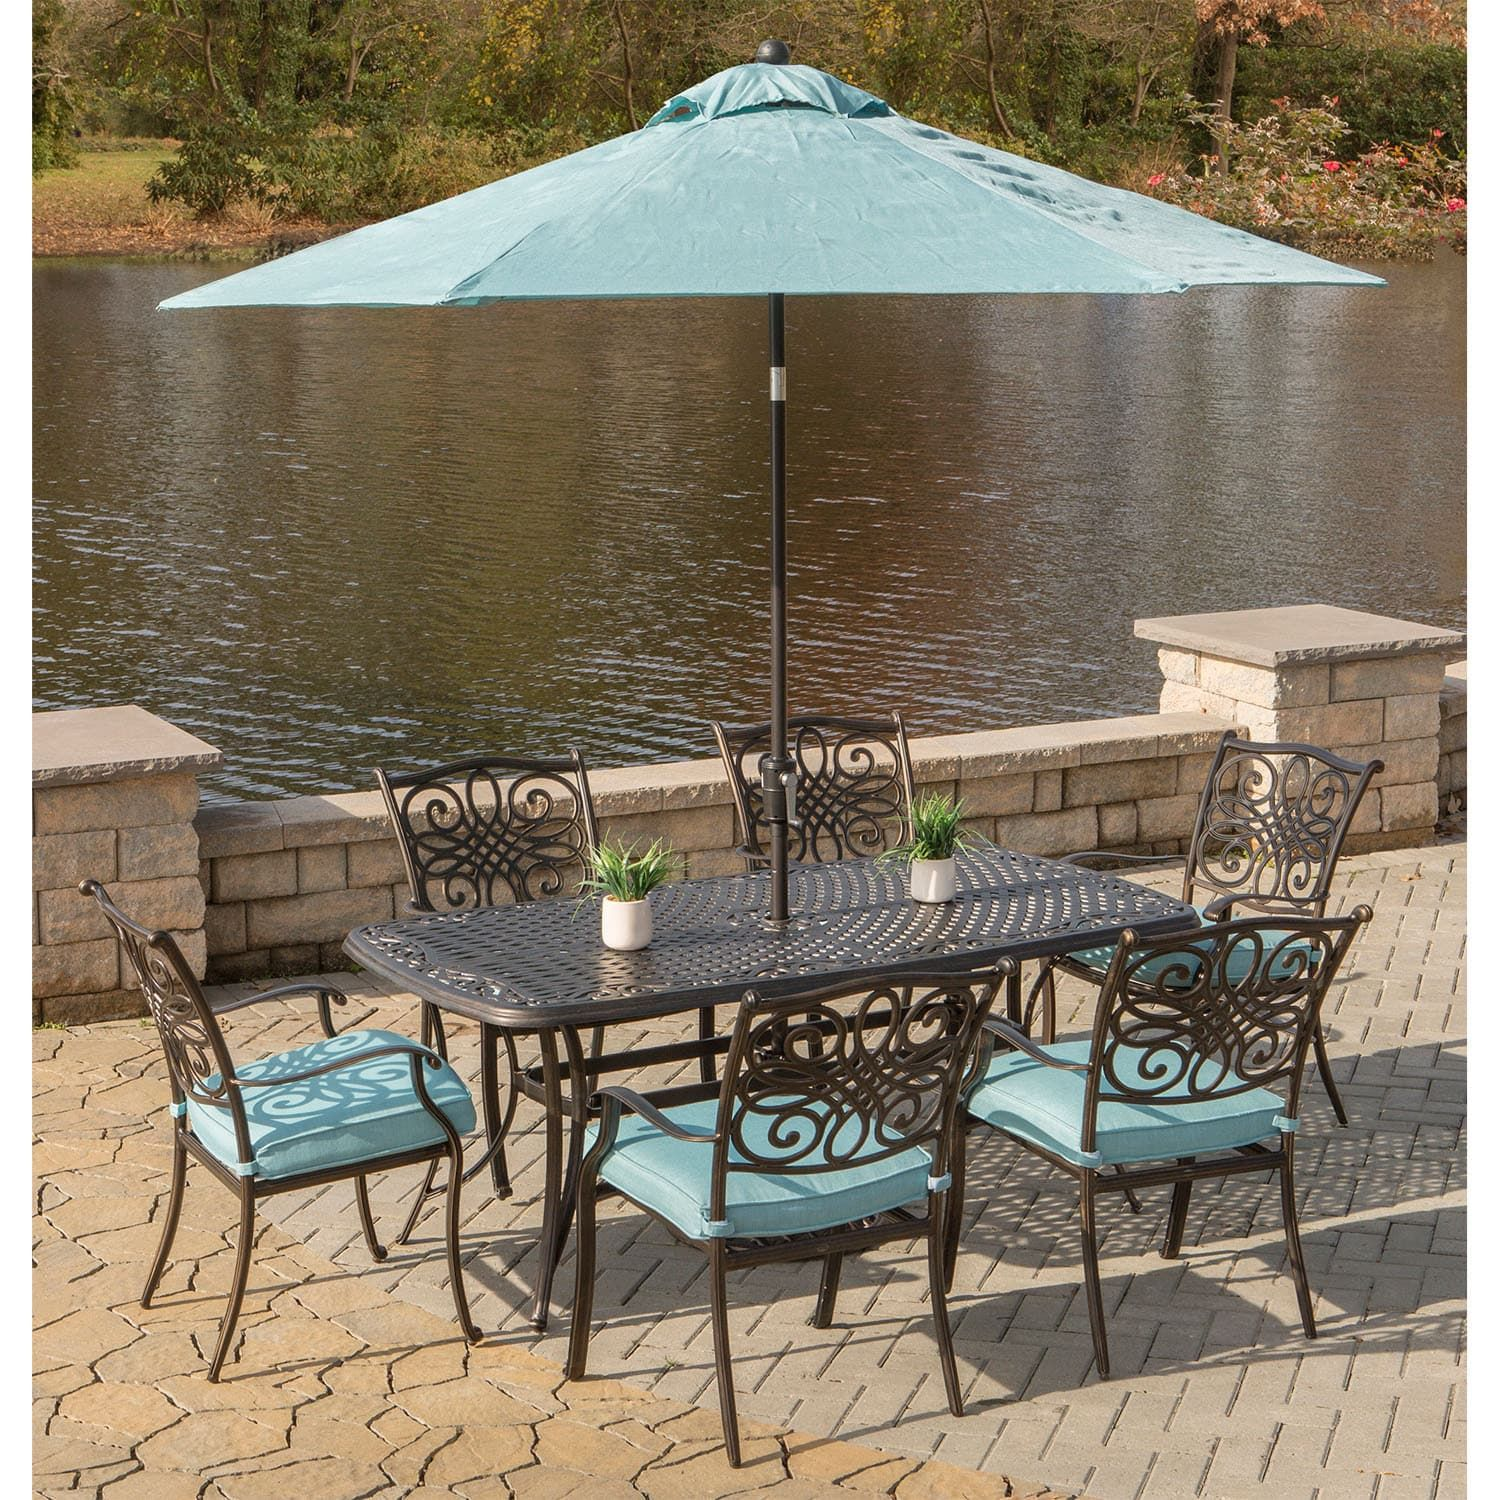 9 foot dining table. Hanover Traditions 7-Piece Dining Set In With Cast-Top Table, 9 Ft. Table Umbrella, And Umbrella Stand , Patio Furniture Foot I